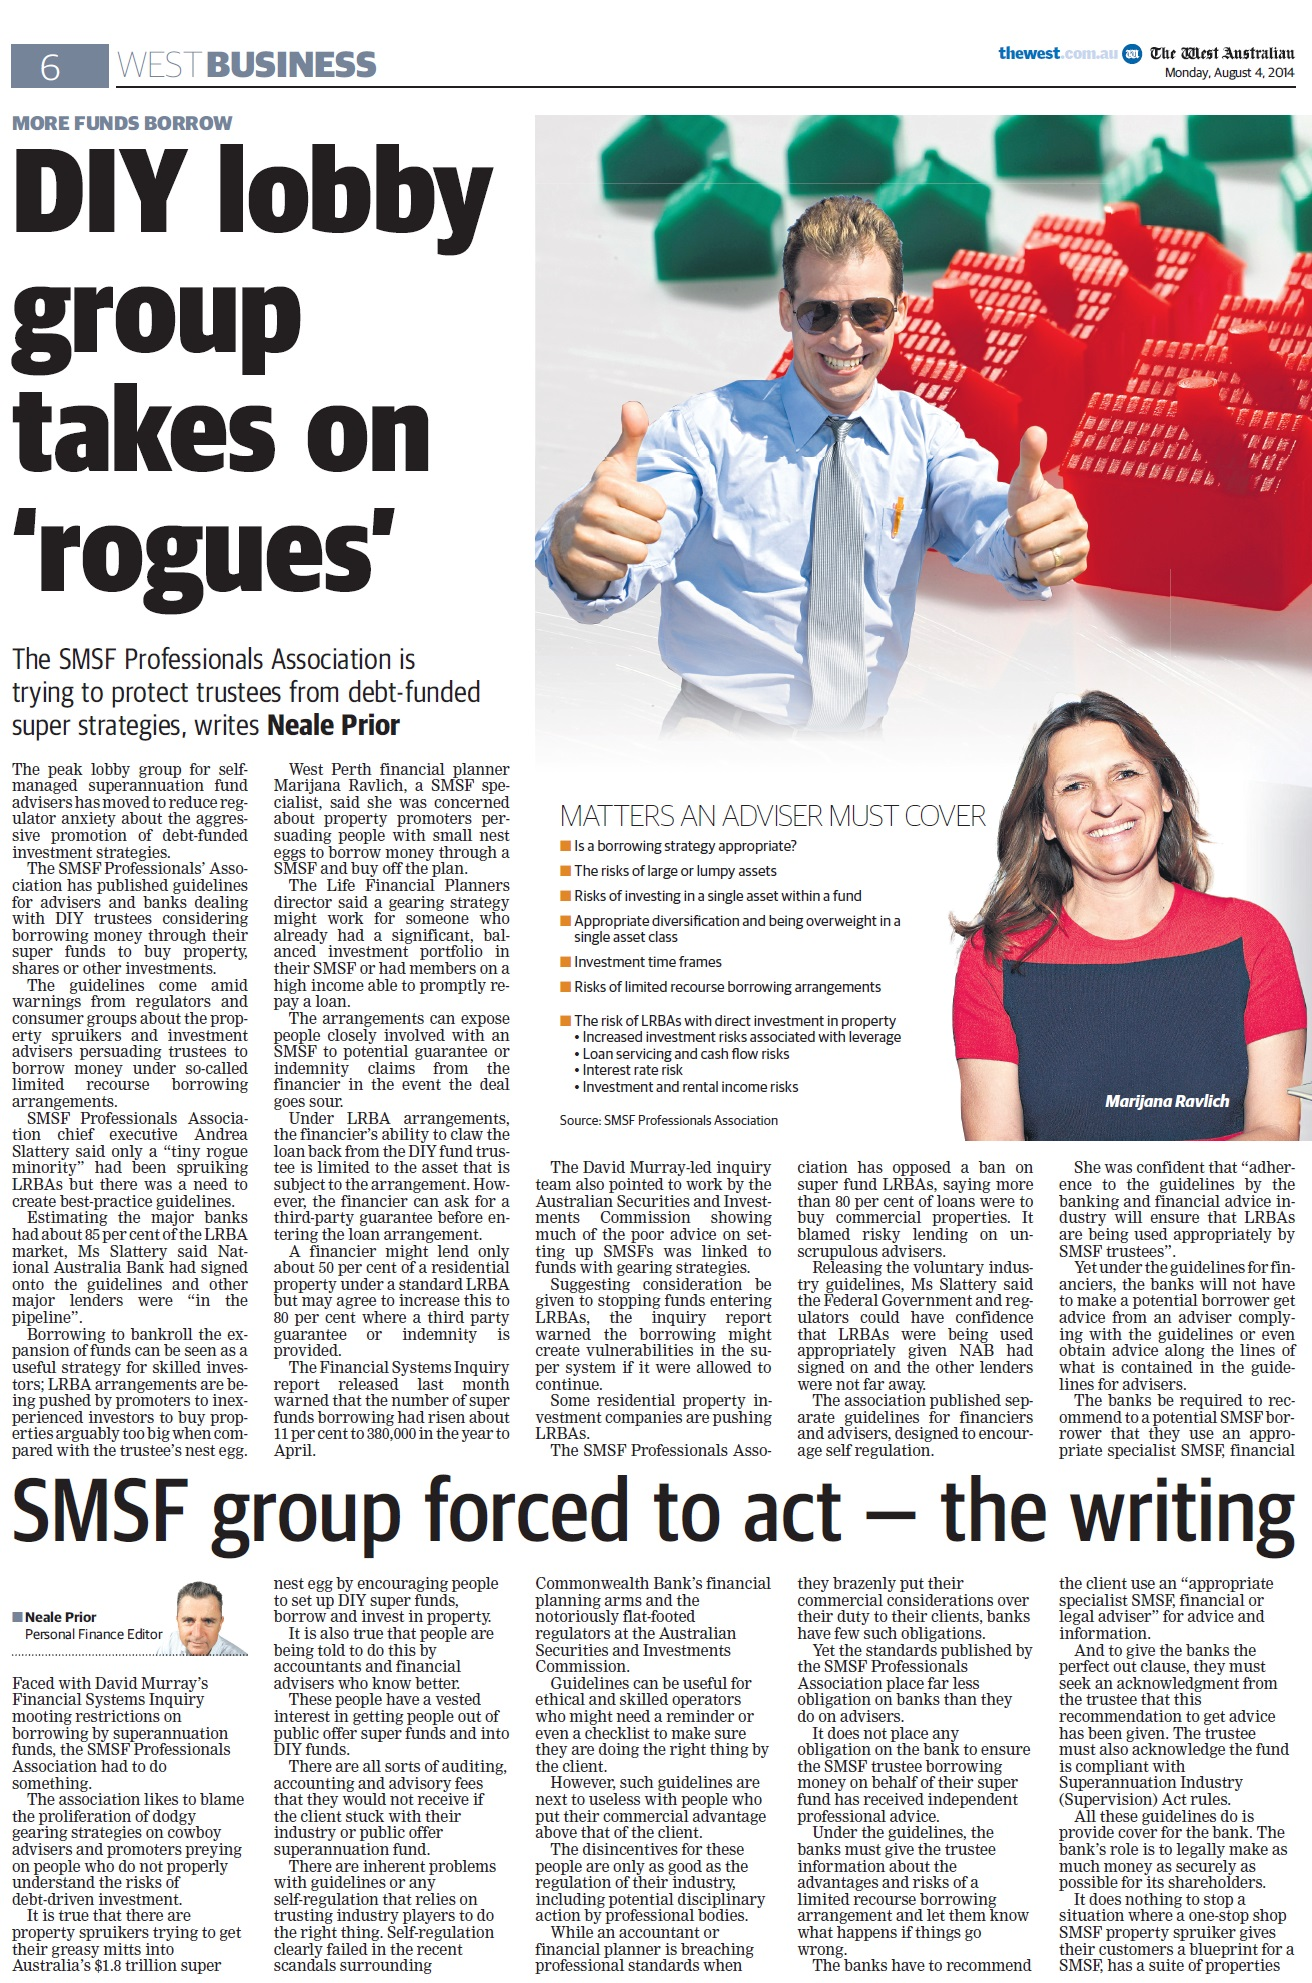 DIY Lobby Group Takes on Rogues - The West August 4, 2014 (Page 6) DIY Lobby Group Takes on 'Rogues' DIY Lobby Group Takes on 'Rogues' DIY Lobby Group Takes on Rogues The West August 4 2014 Page 6